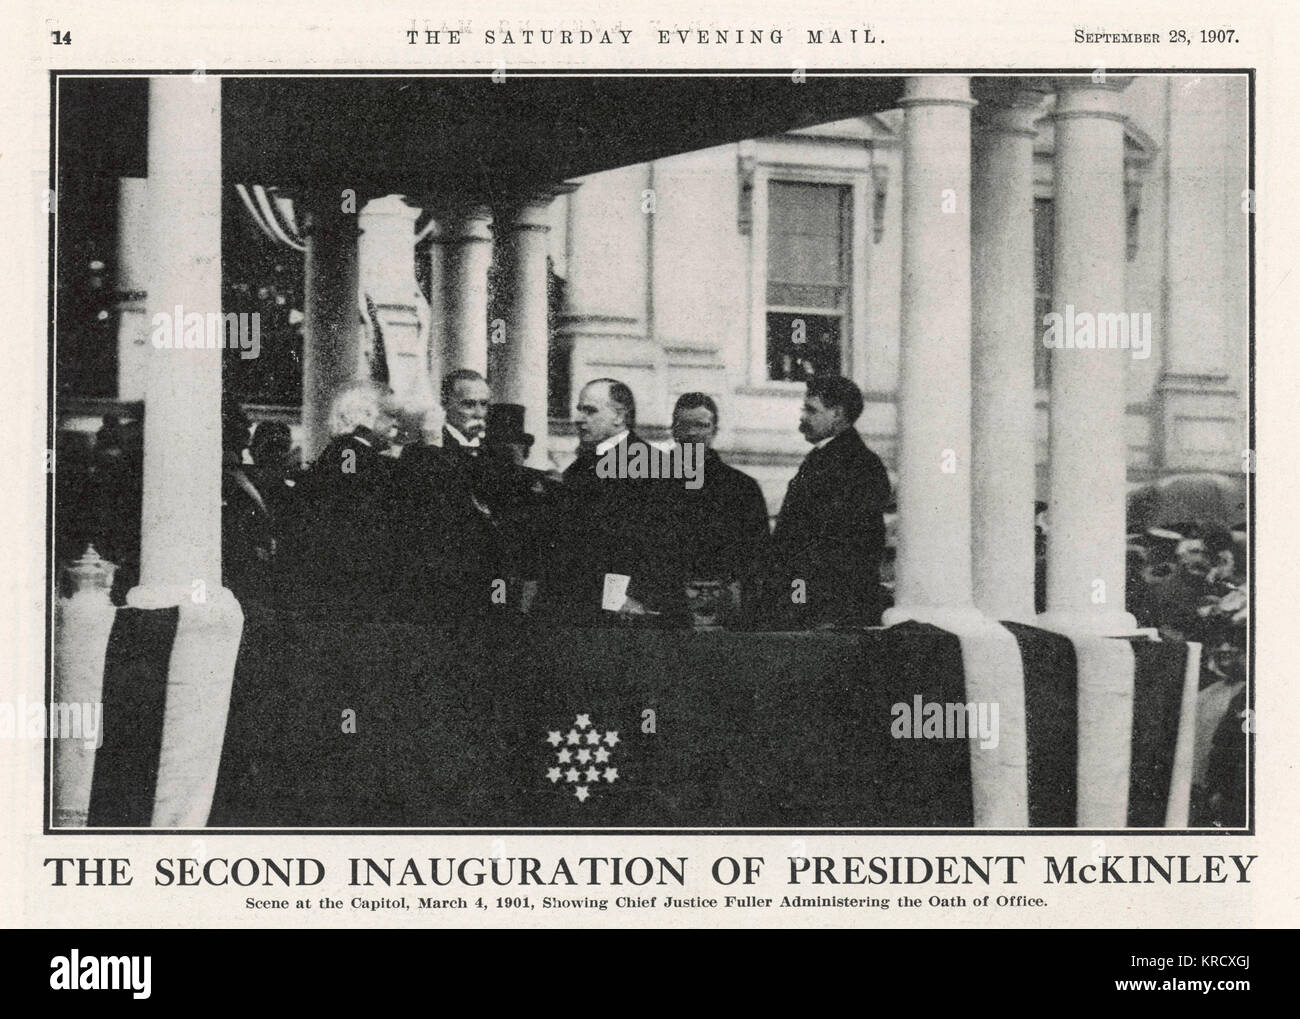 WILLIAM MCKINLEY  The inauguration of William McKinley to a second term as  President of the USA at  the Capitol - Stock Image